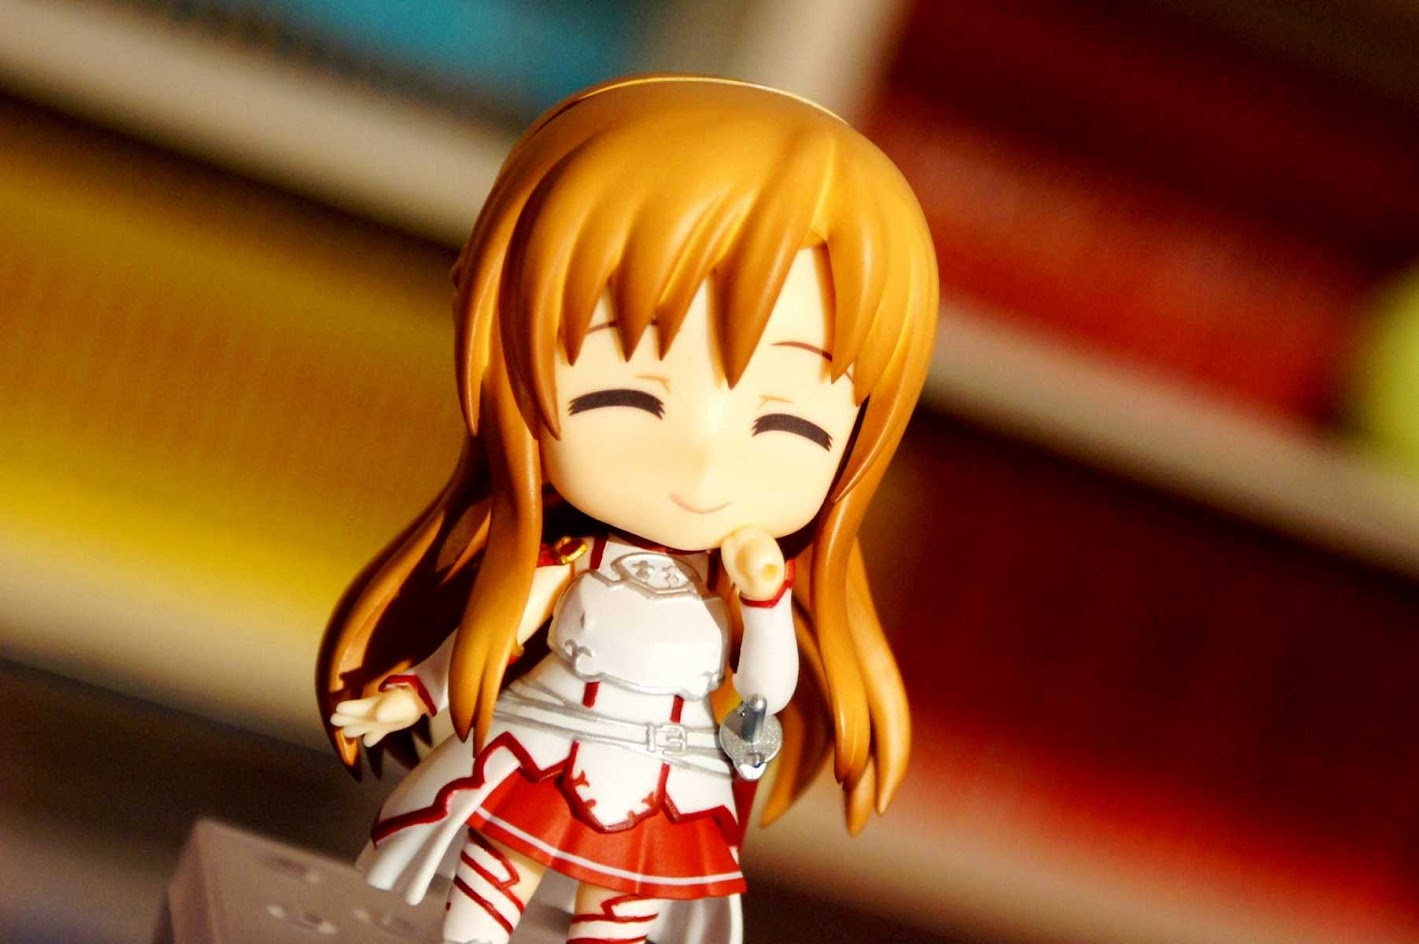 Sword Art Online - Asuna - Nendoroid #283 (Good Smile Company)